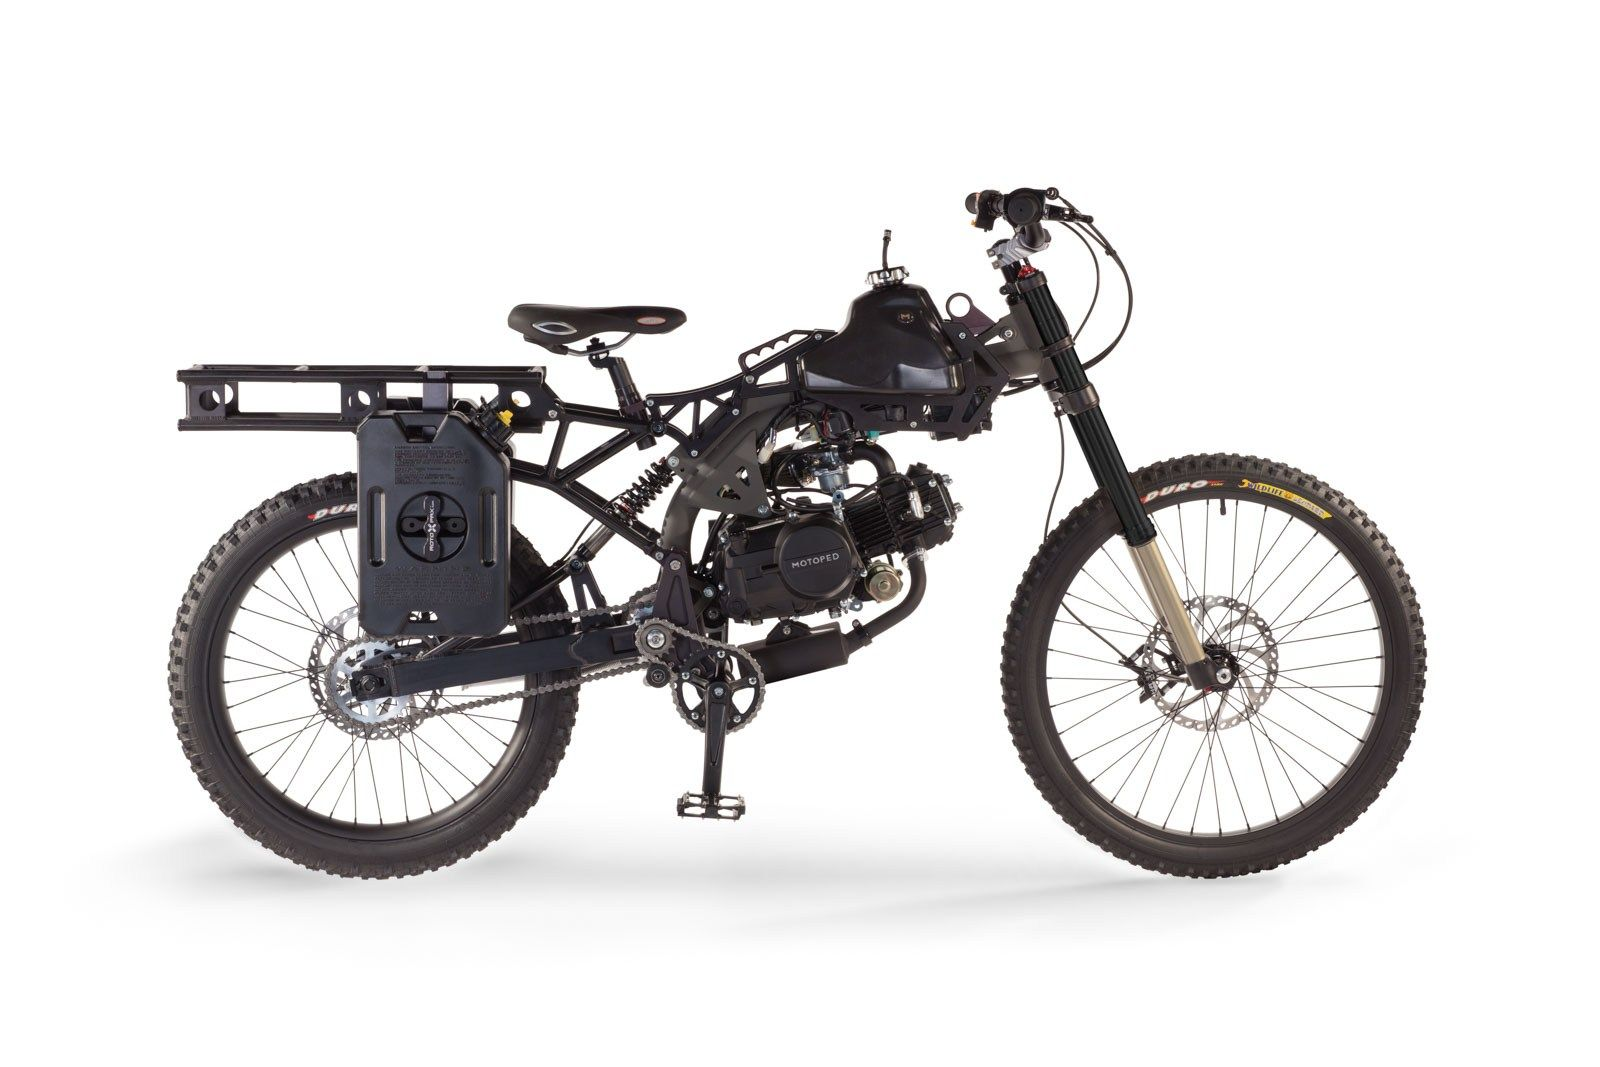 Survival | want it  | Motorcycle camping, Motorized bicycle